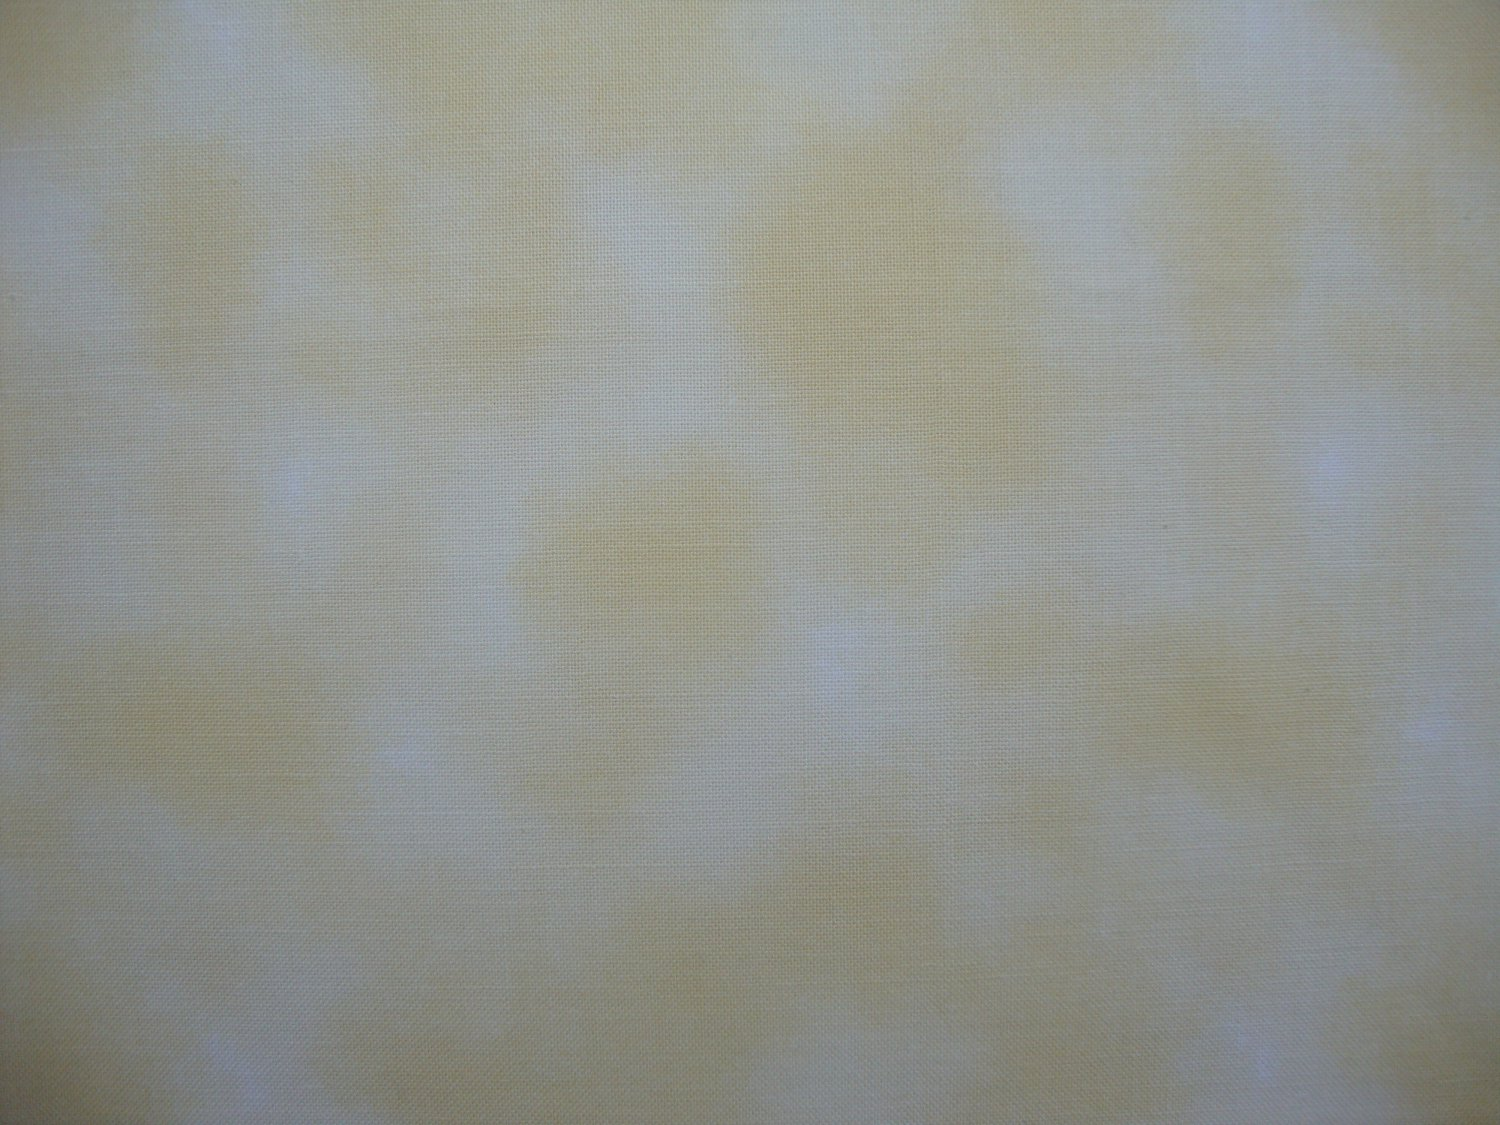 Bolt End Mottled Yellow Cotton Fabric from The World of Beatrix Potter Fabric Line